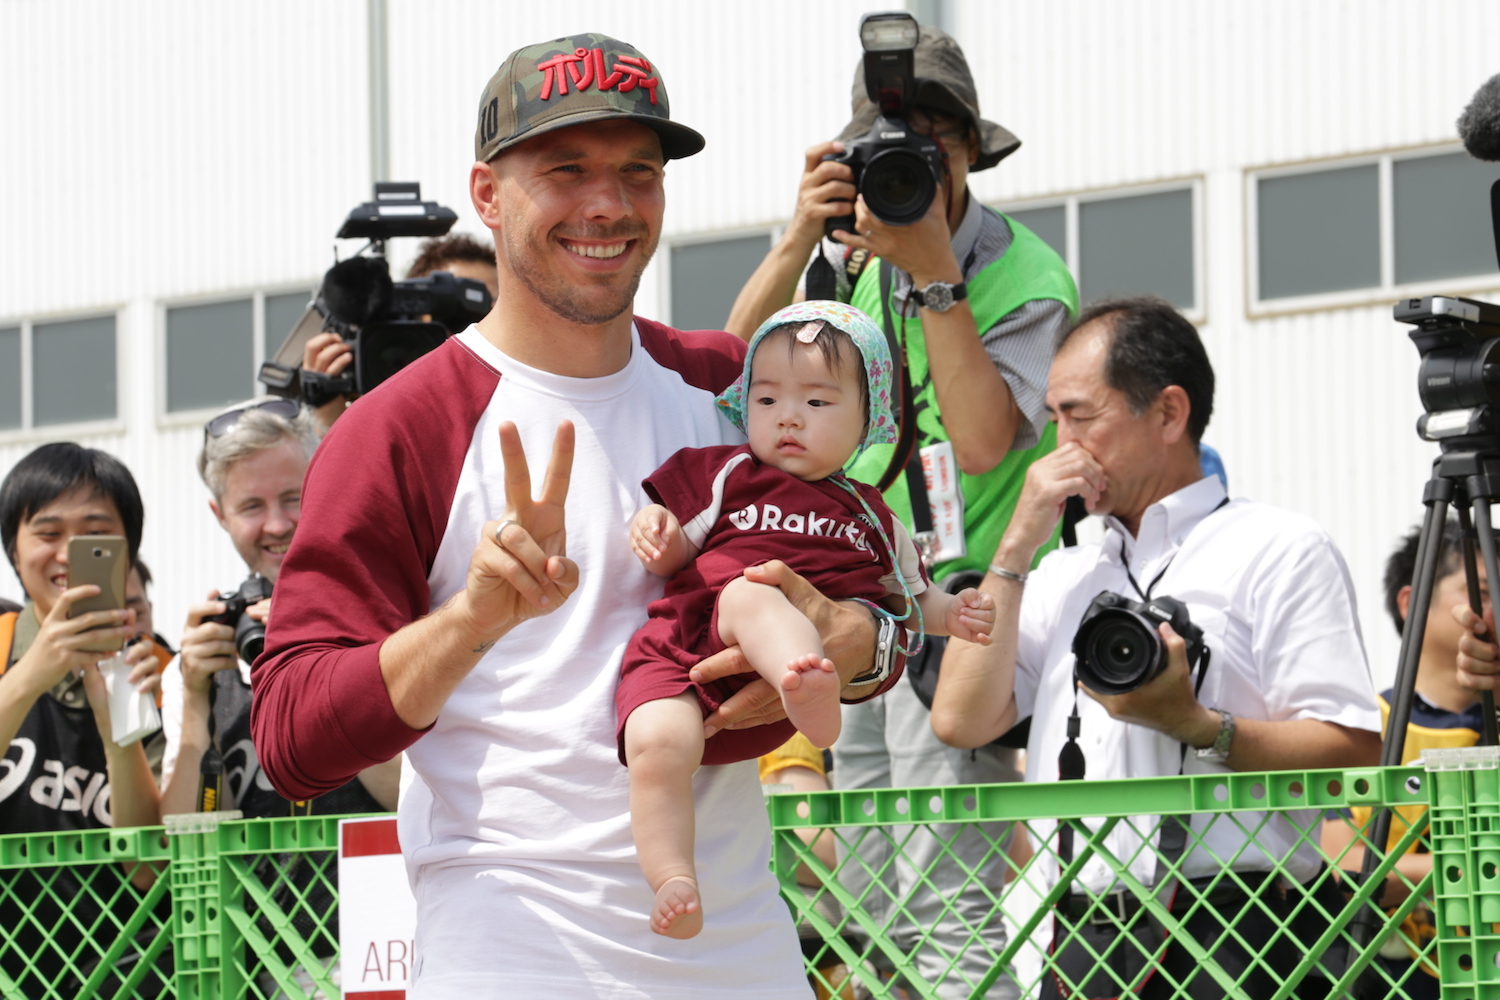 The new role will see Lukas Podolski appear in promotional videos and online campaigns for JNTO as it aims to encourage Germans to visit Japan.